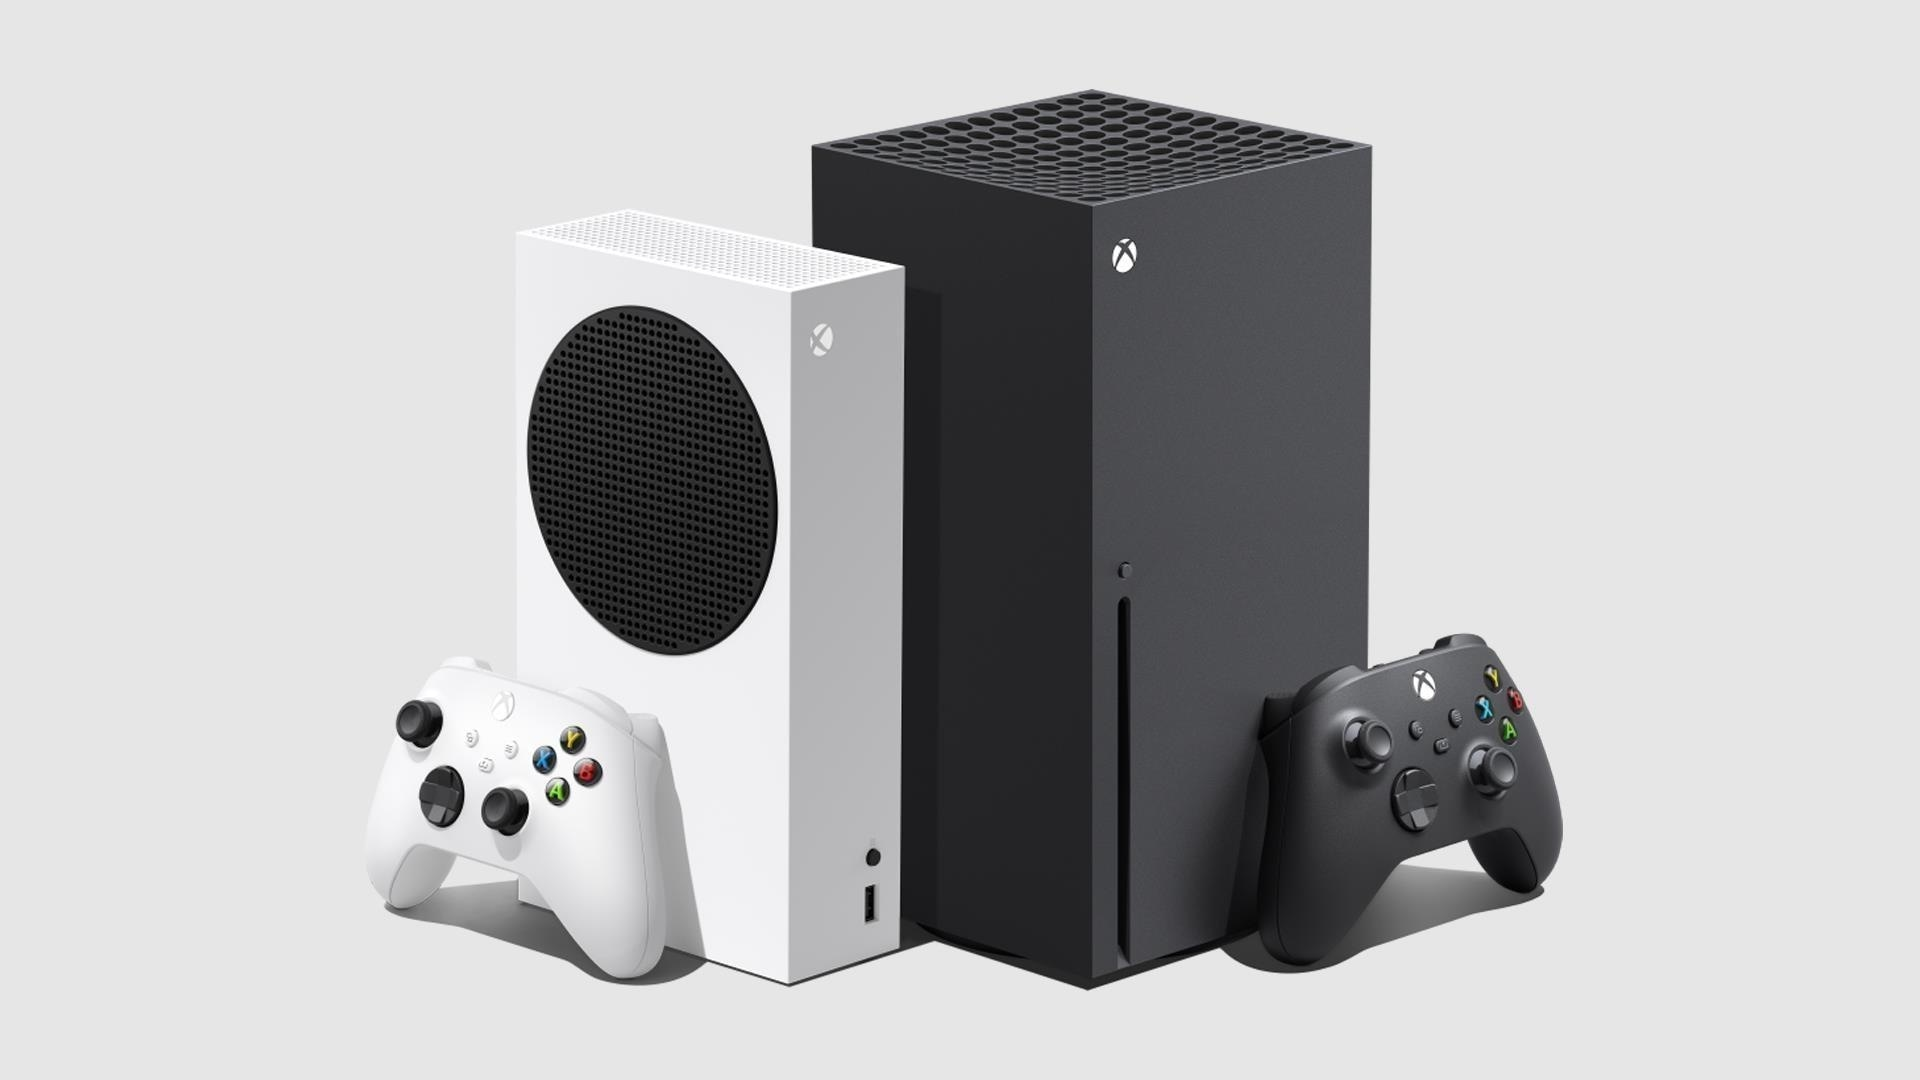 Do you own an Xbox Series X S?